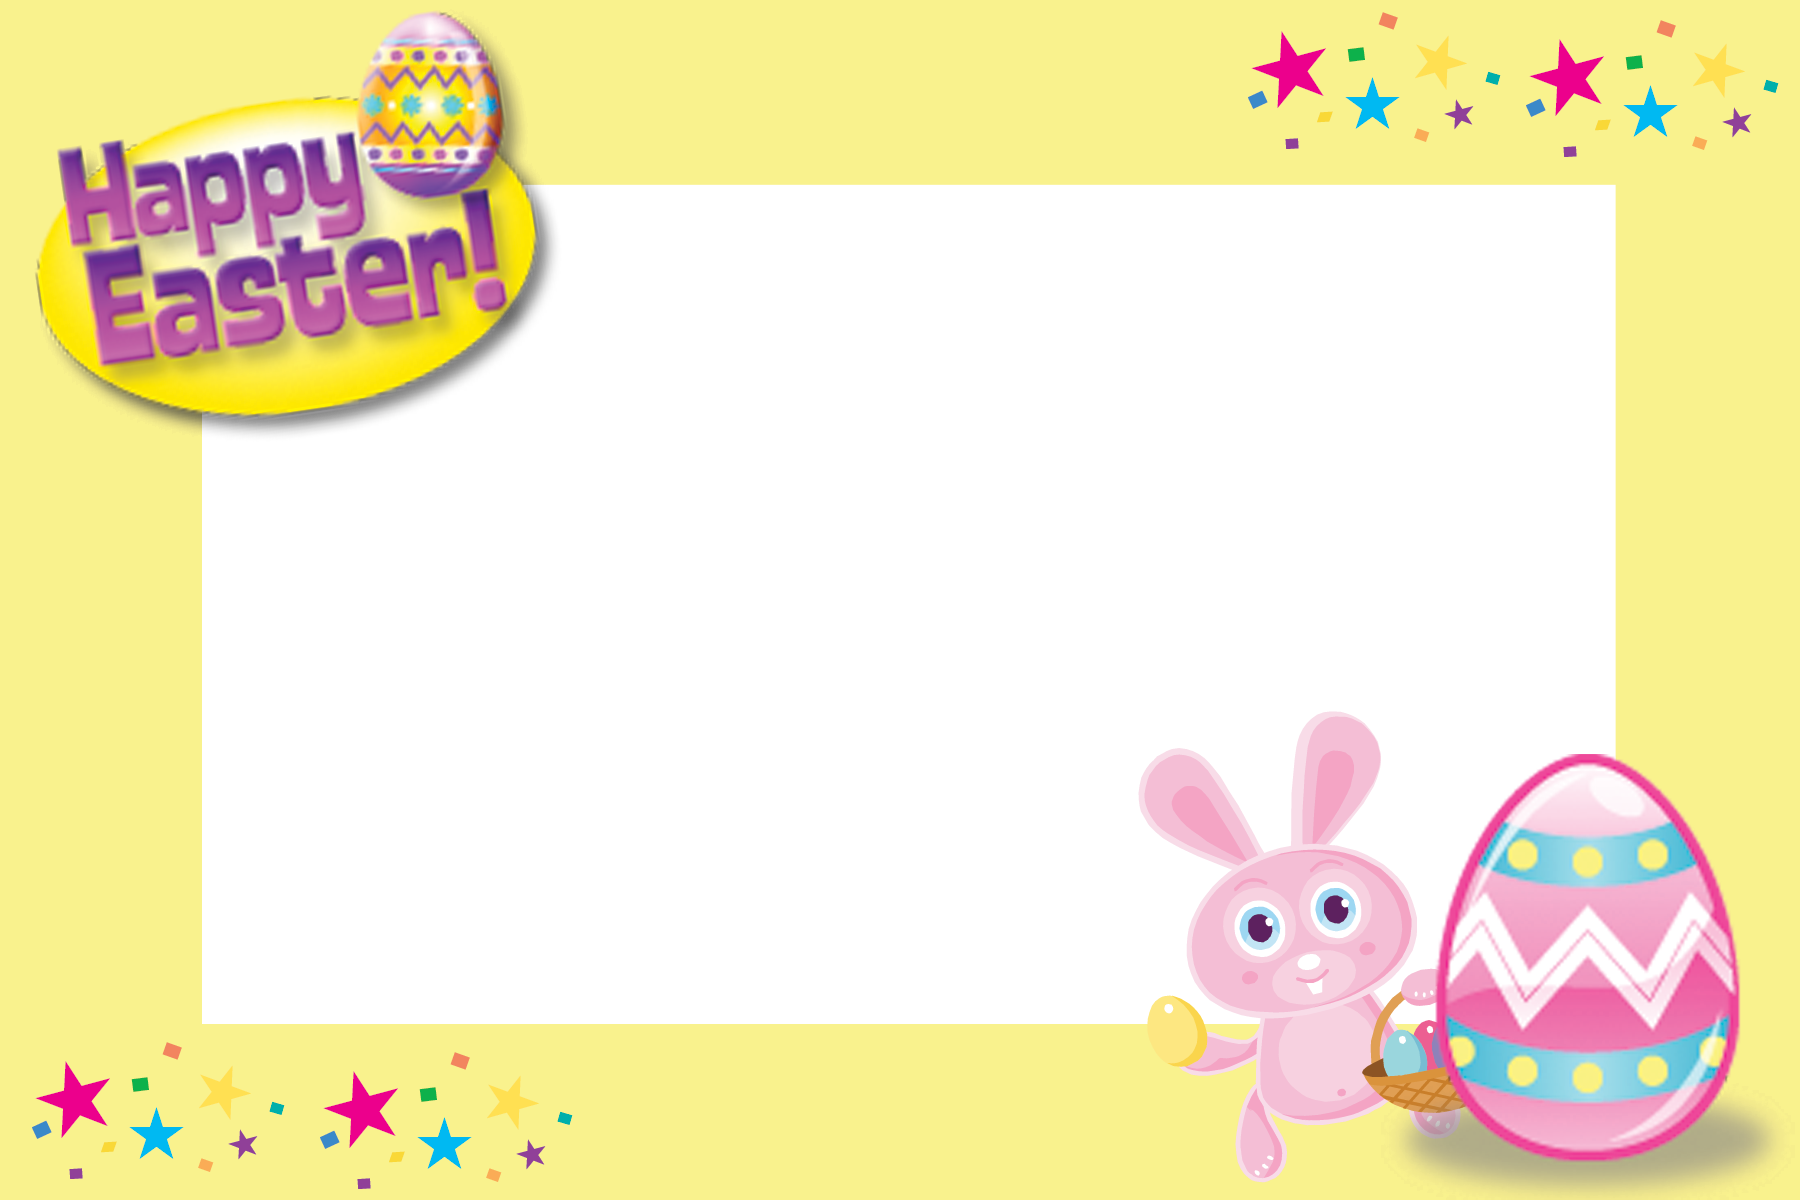 Epson Creative Corner Holidays Amp Events Easter Photo Frame